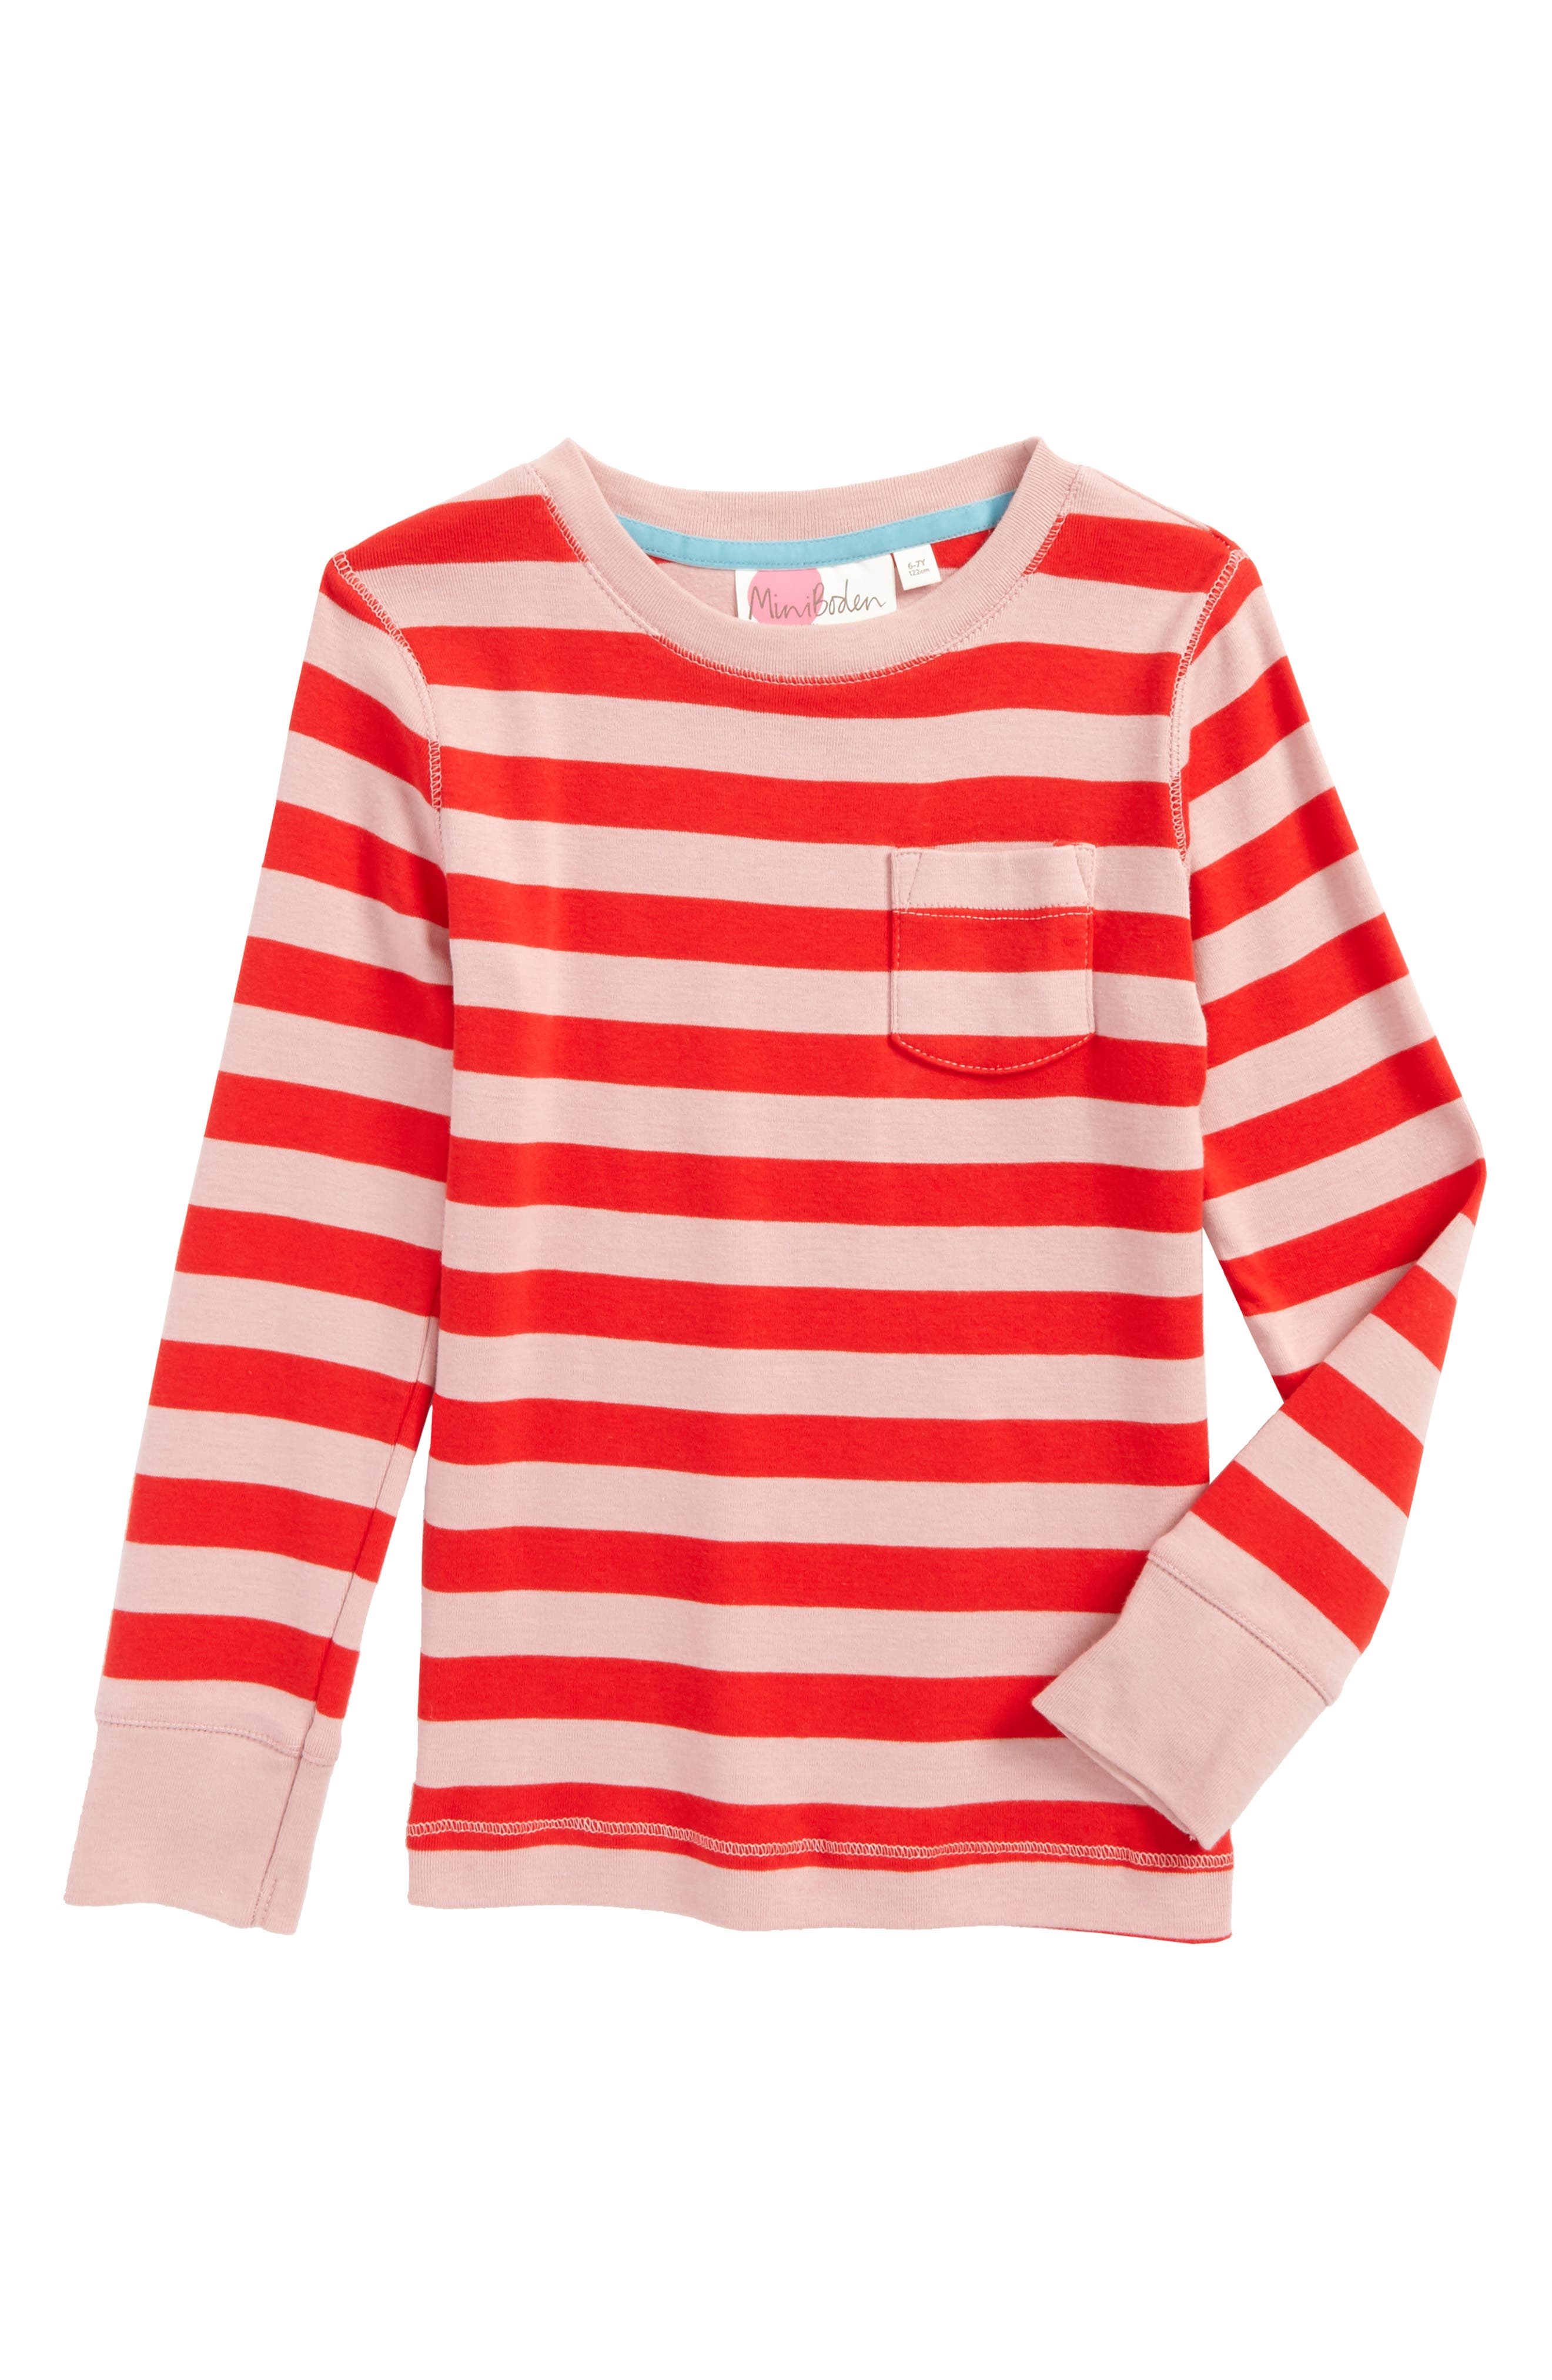 Everyday Tee,                         Main,                         color, Vintage Pink/ Ladybird Stripe